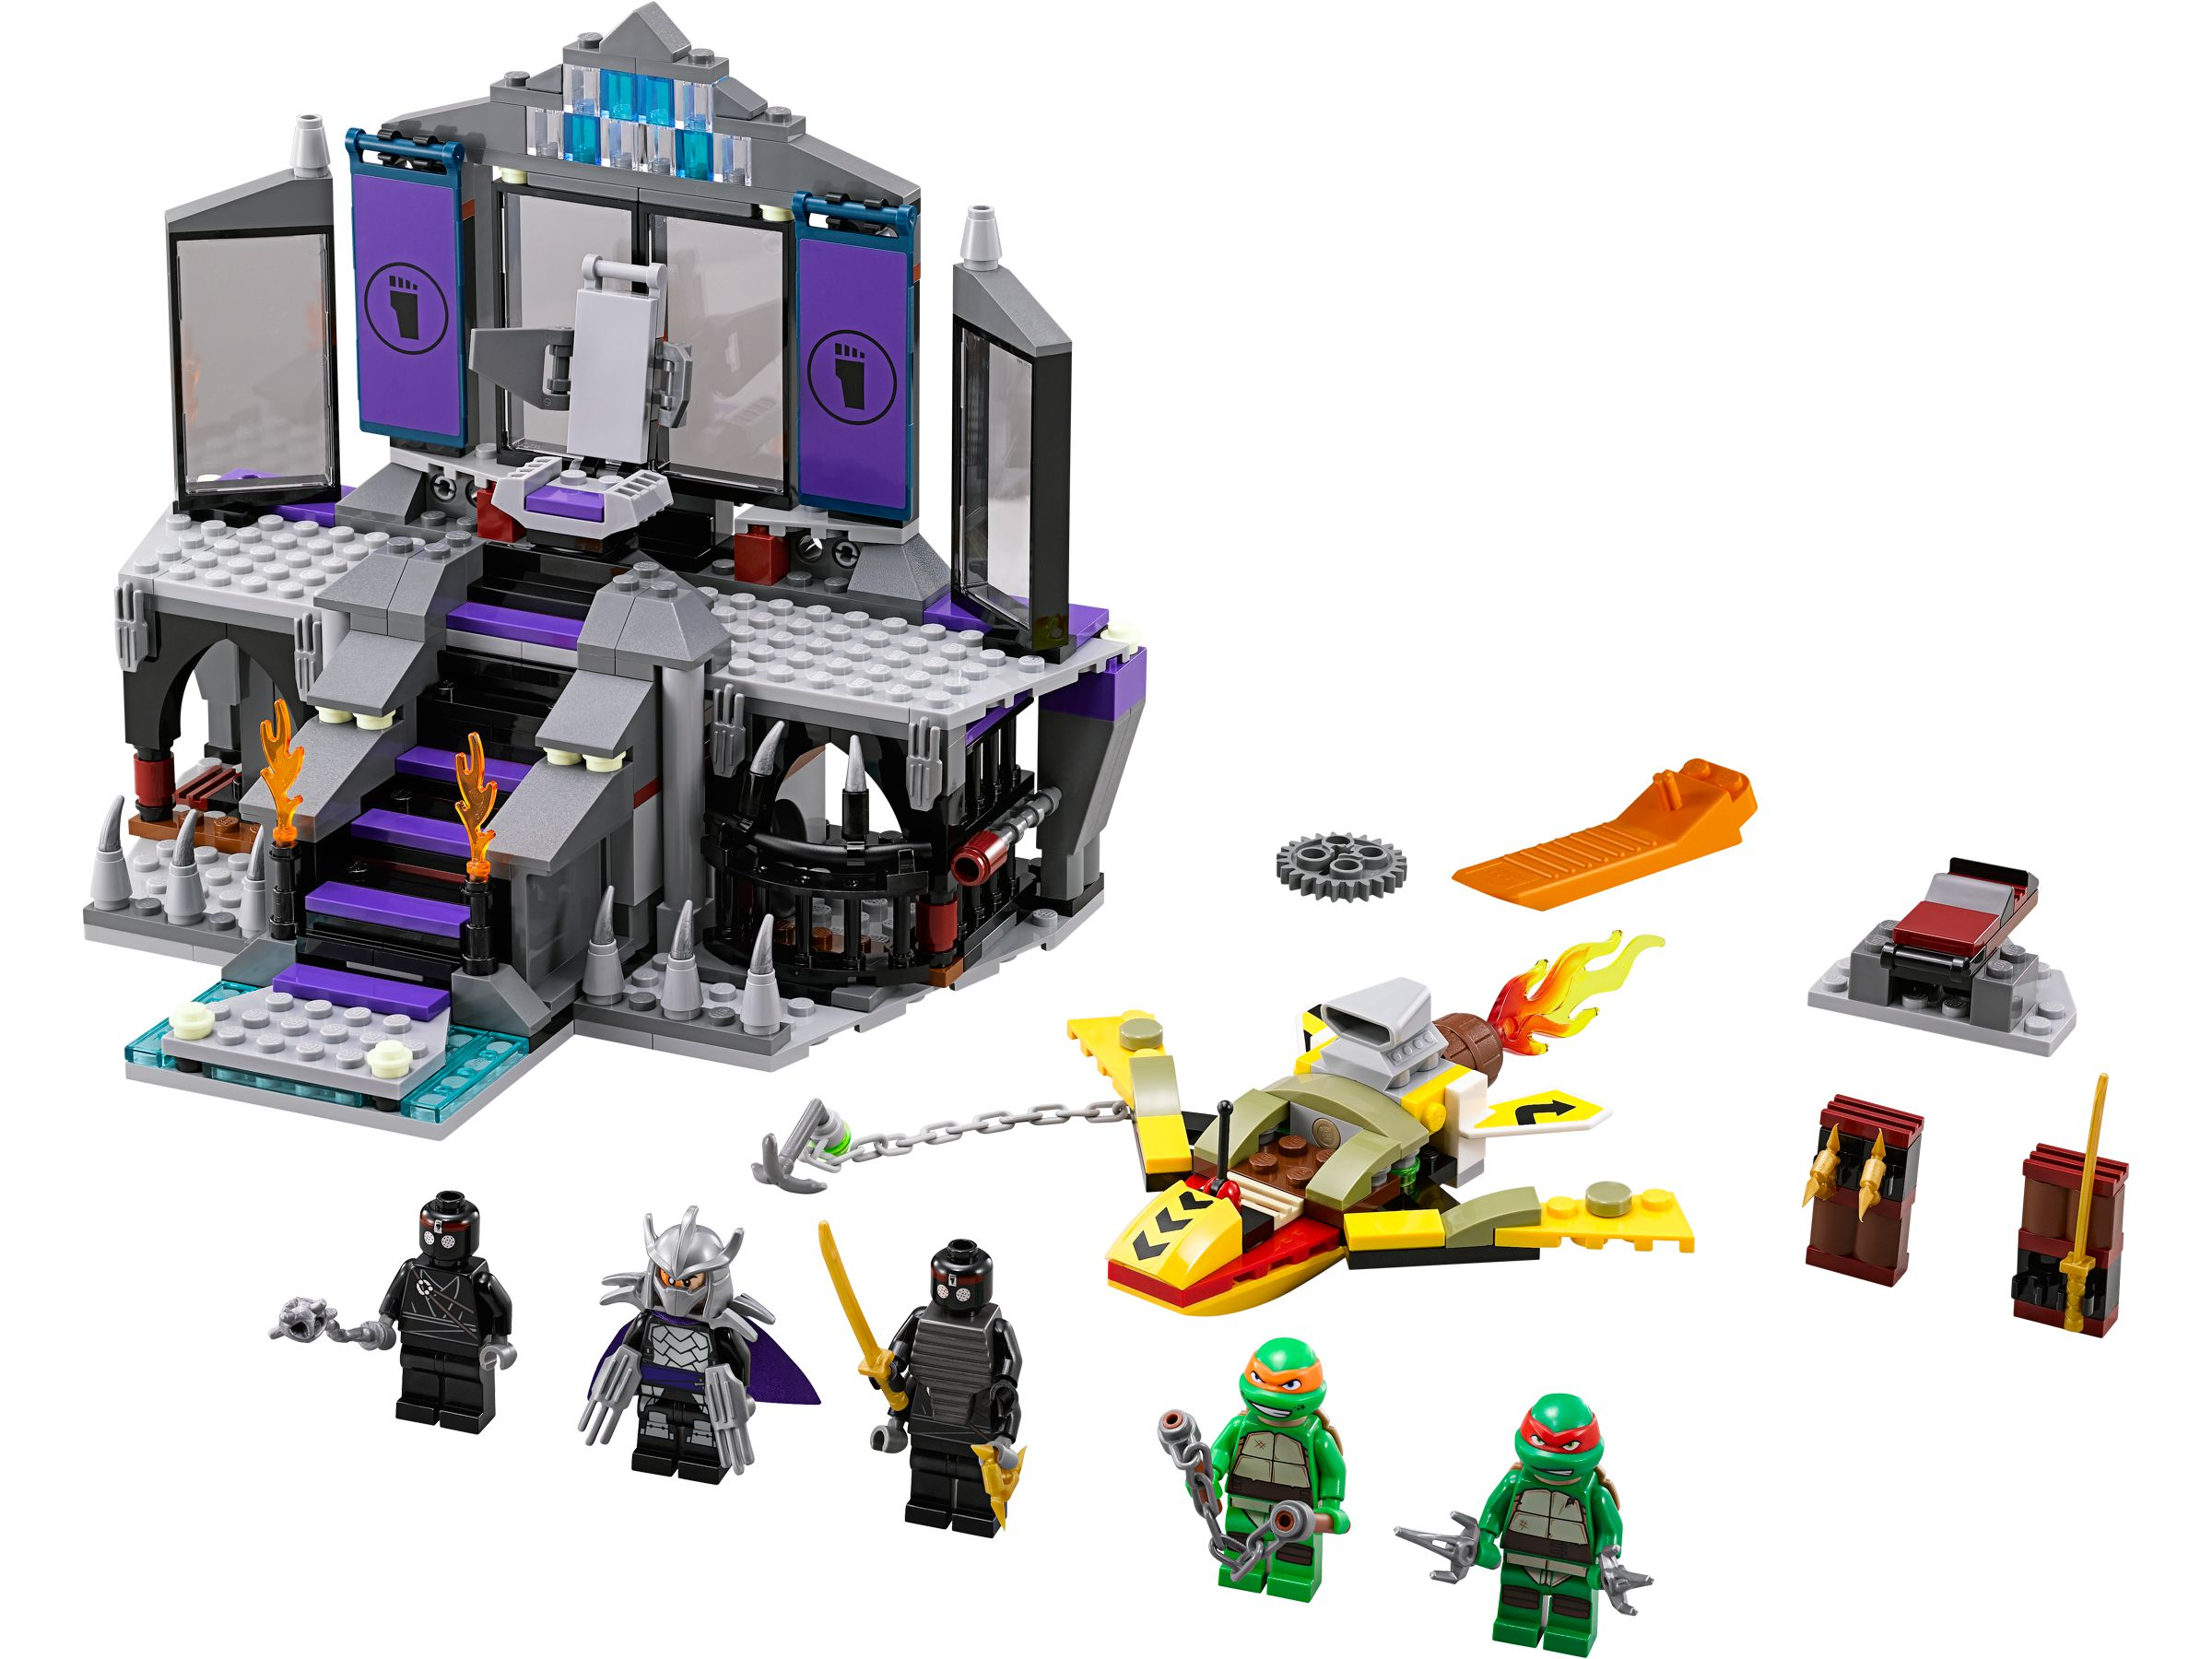 LEGO Teenage Mutant Ninja Turtles 79122 Rettung aus Shredders Versteck LEGO_79122.jpg